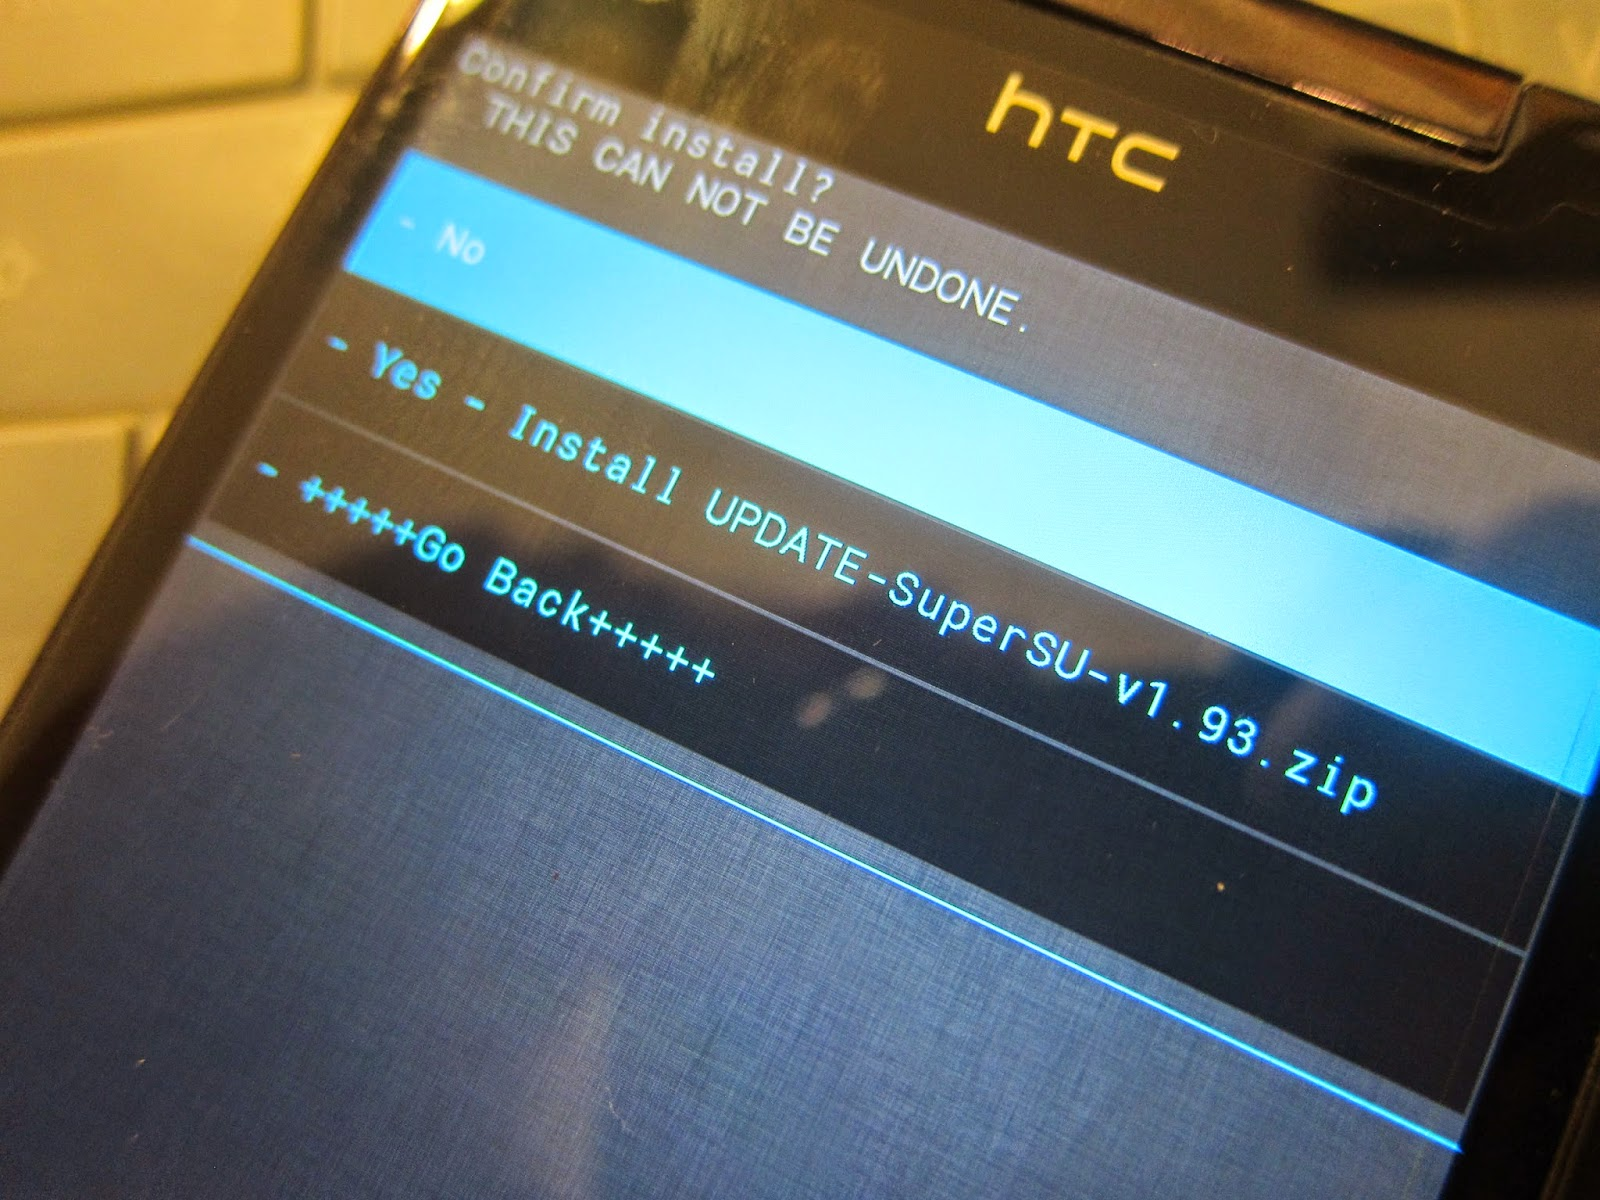 IMG 2333 - 【圖文教學】HTC Butterfly 4.3/4.4 解鎖+ROOT